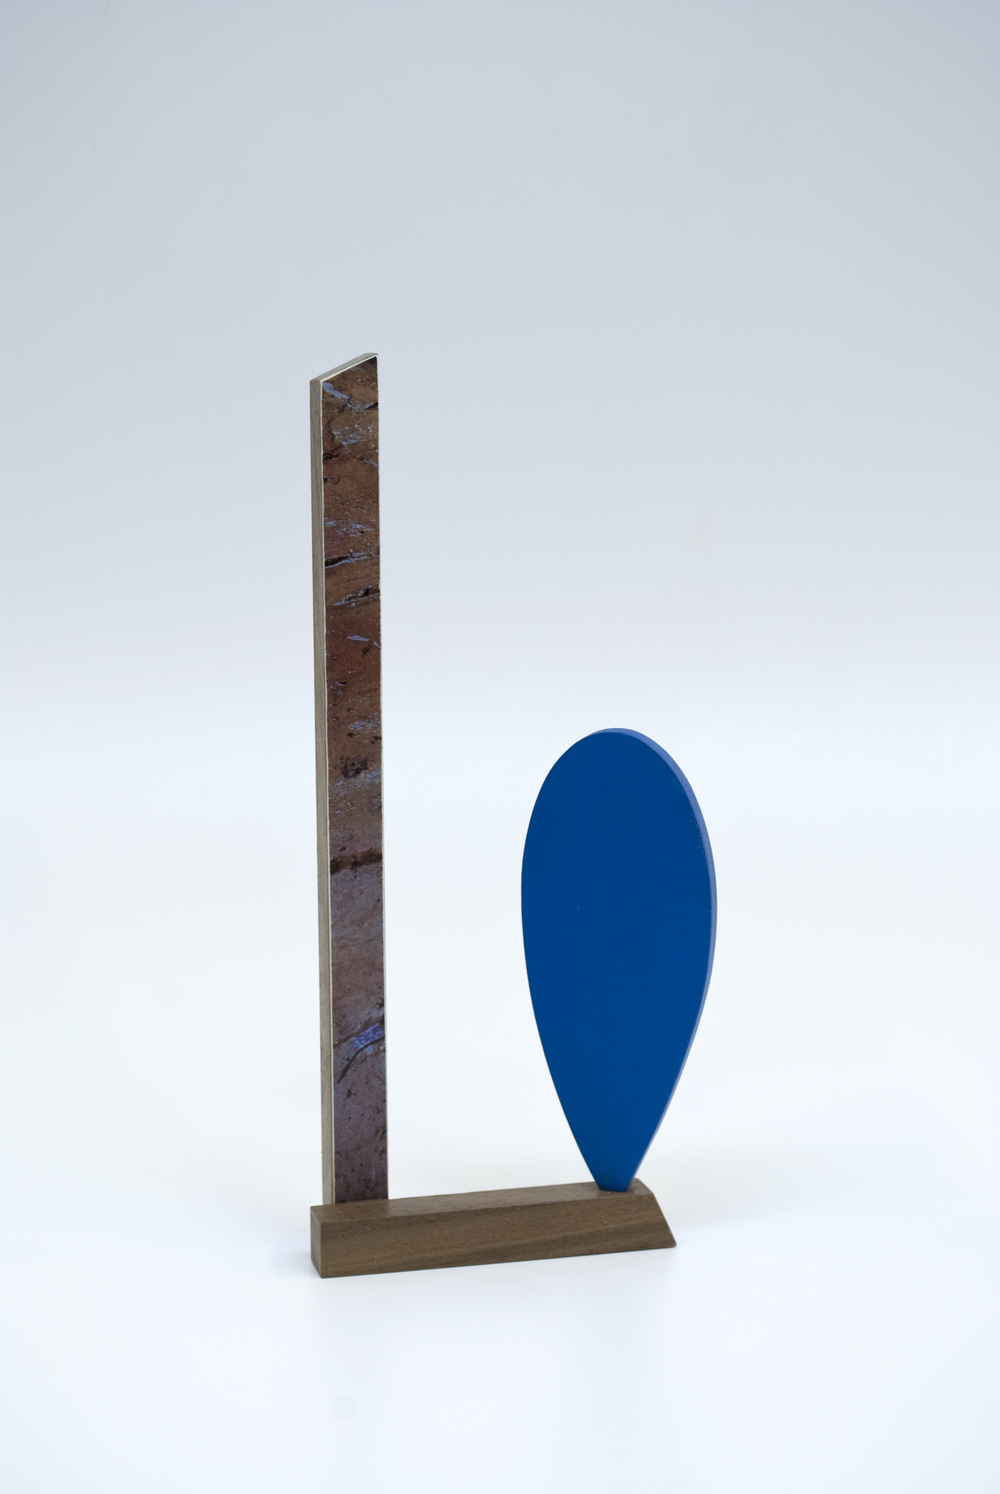 Maquette 9 , 2015  8 x 3 x 1 inches  Wood, paint, found image